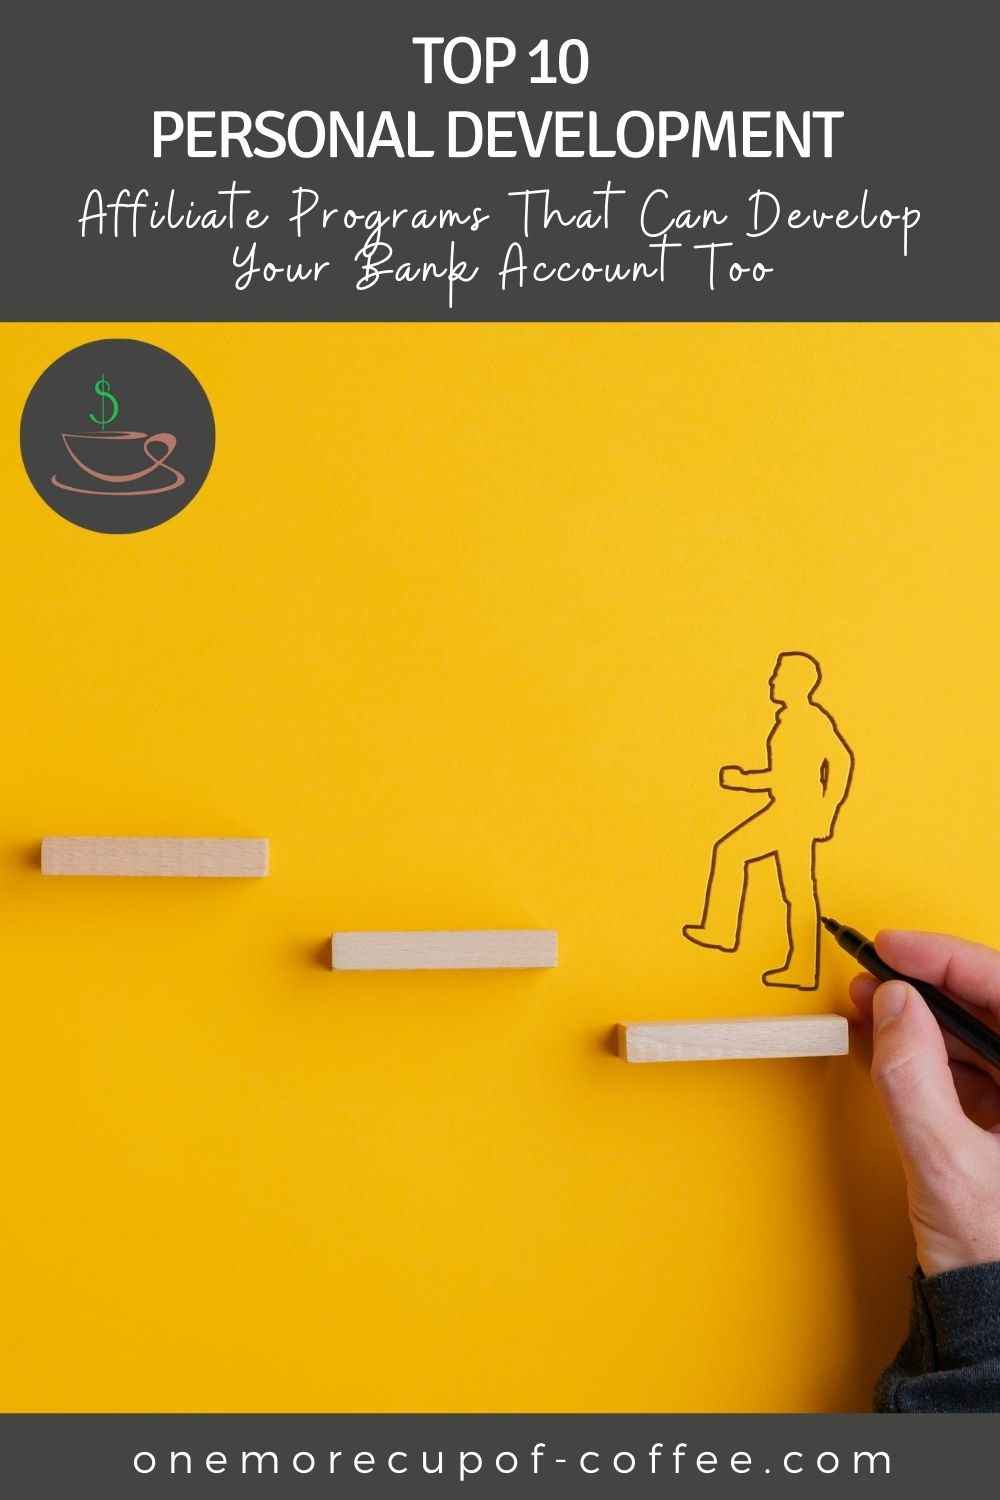 """hand drawing a line drawing of a man ascending a wooden ladder against a yellow background; with text at the top """"Top 10 Personal Development Affiliate Programs That Can Develop Your Bank Account Too"""""""